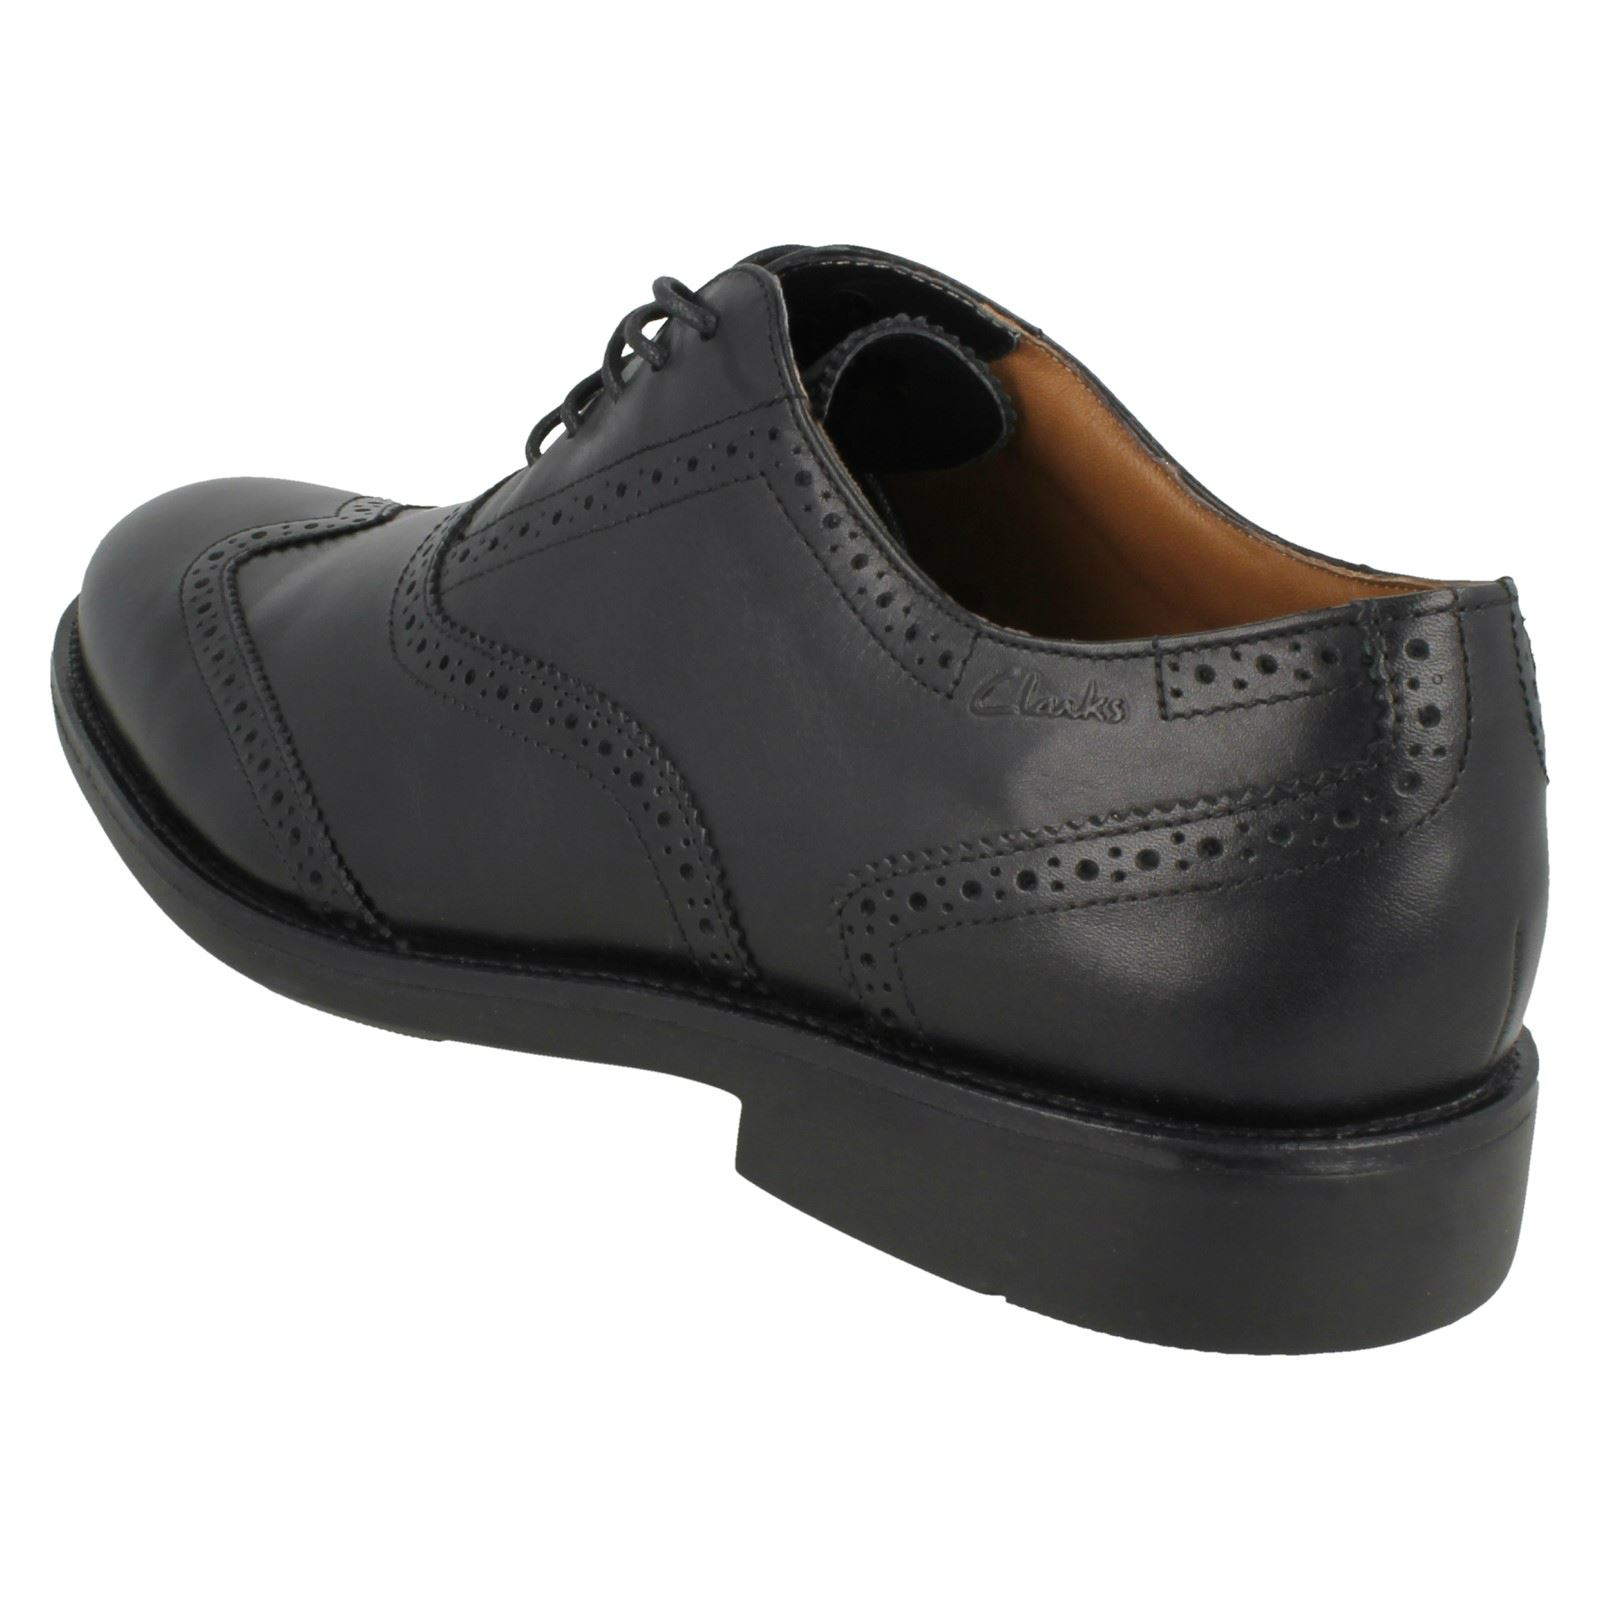 Uomo Schuhes Clarks Lace Up Brogue Schuhes Uomo - Dresslite City fb73b2